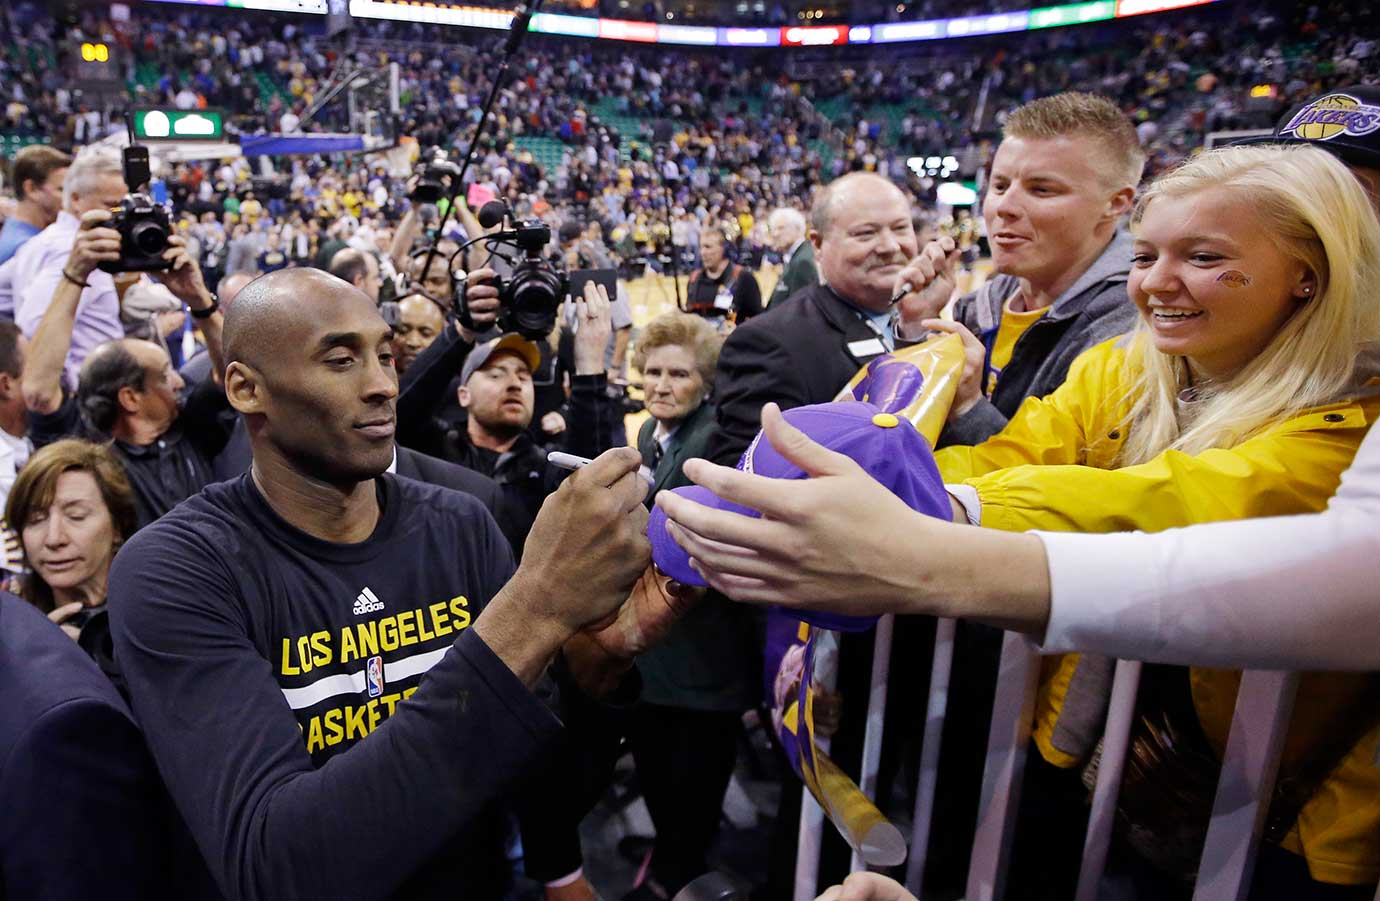 Kobe Bryant signs autographs as he leaves the court following his final game in Salt Lake City.